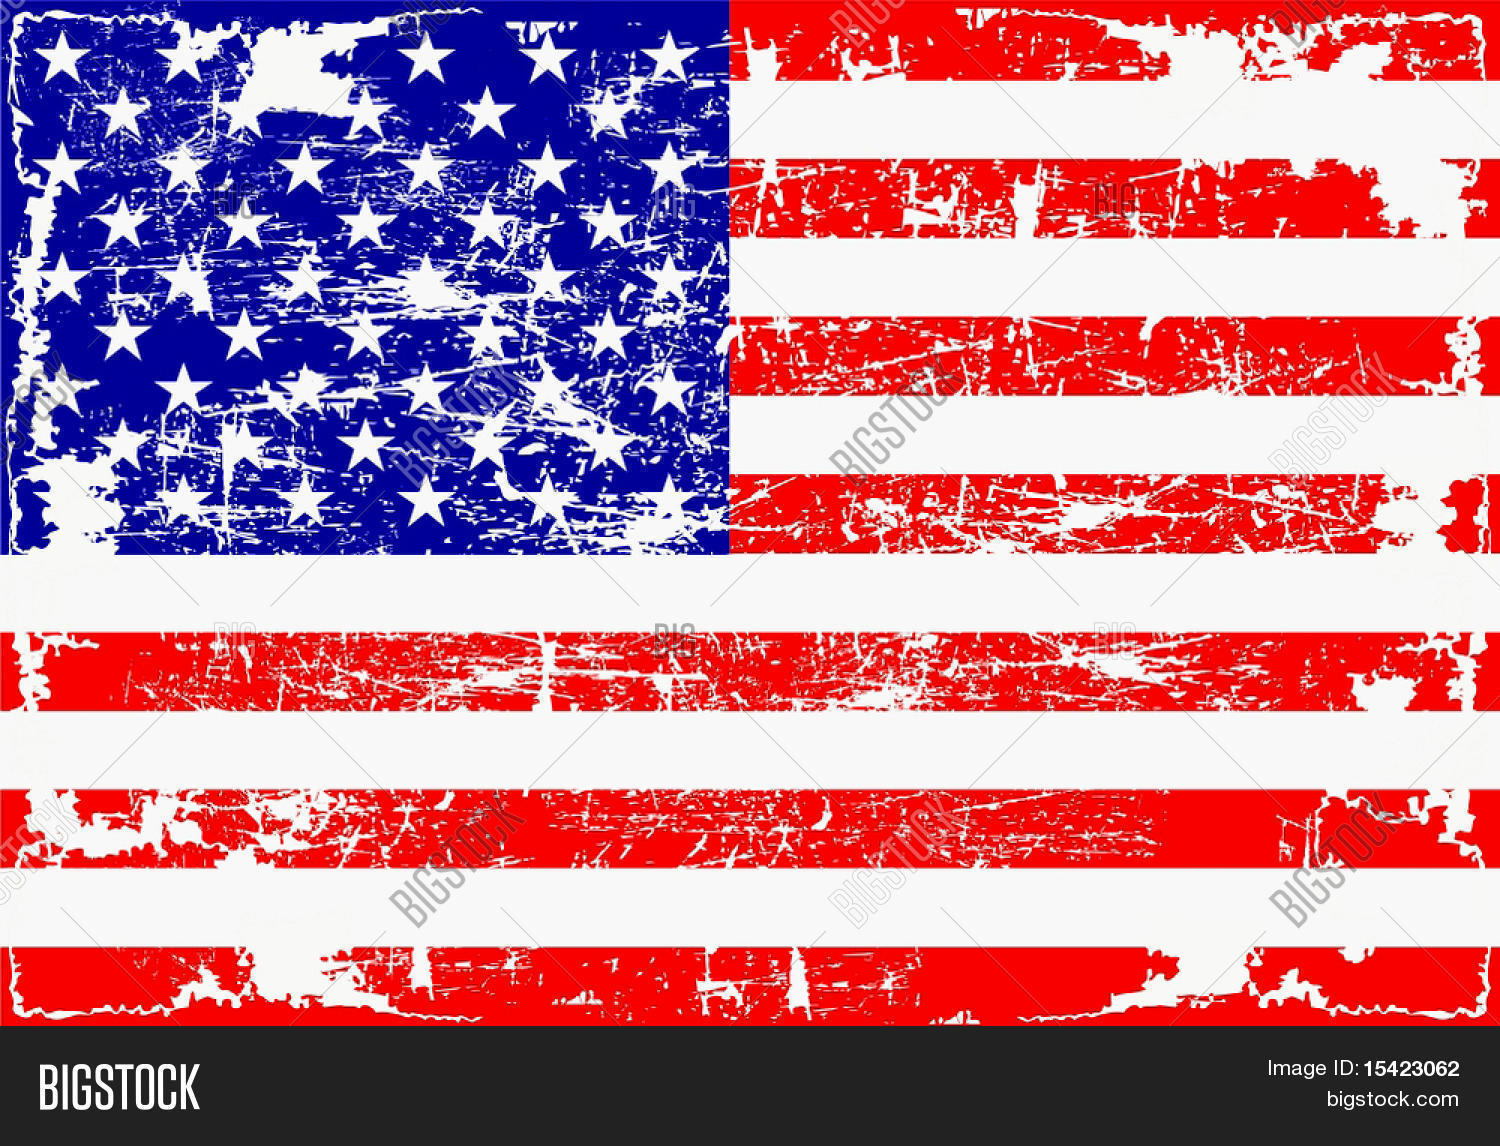 vector american flag vector photo free trial bigstock